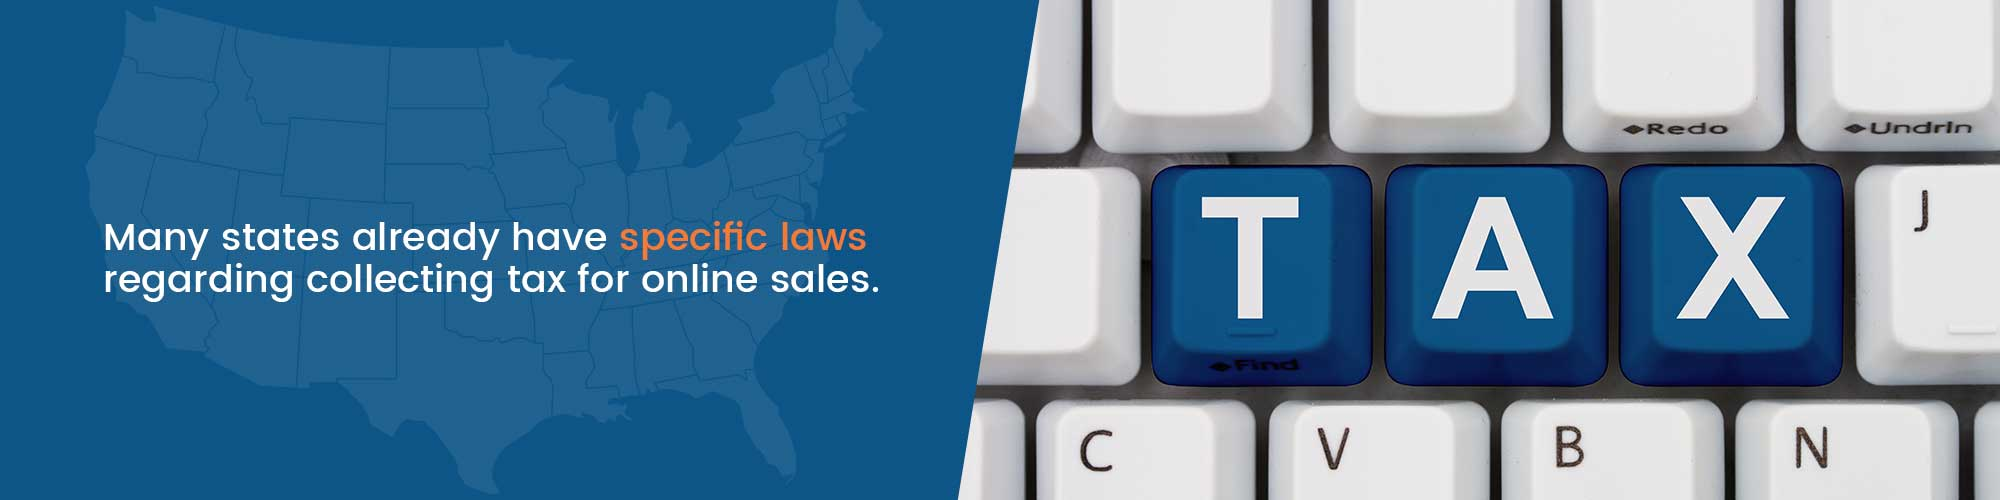 Many states already have specific laws regarding collecting tax for online sales.